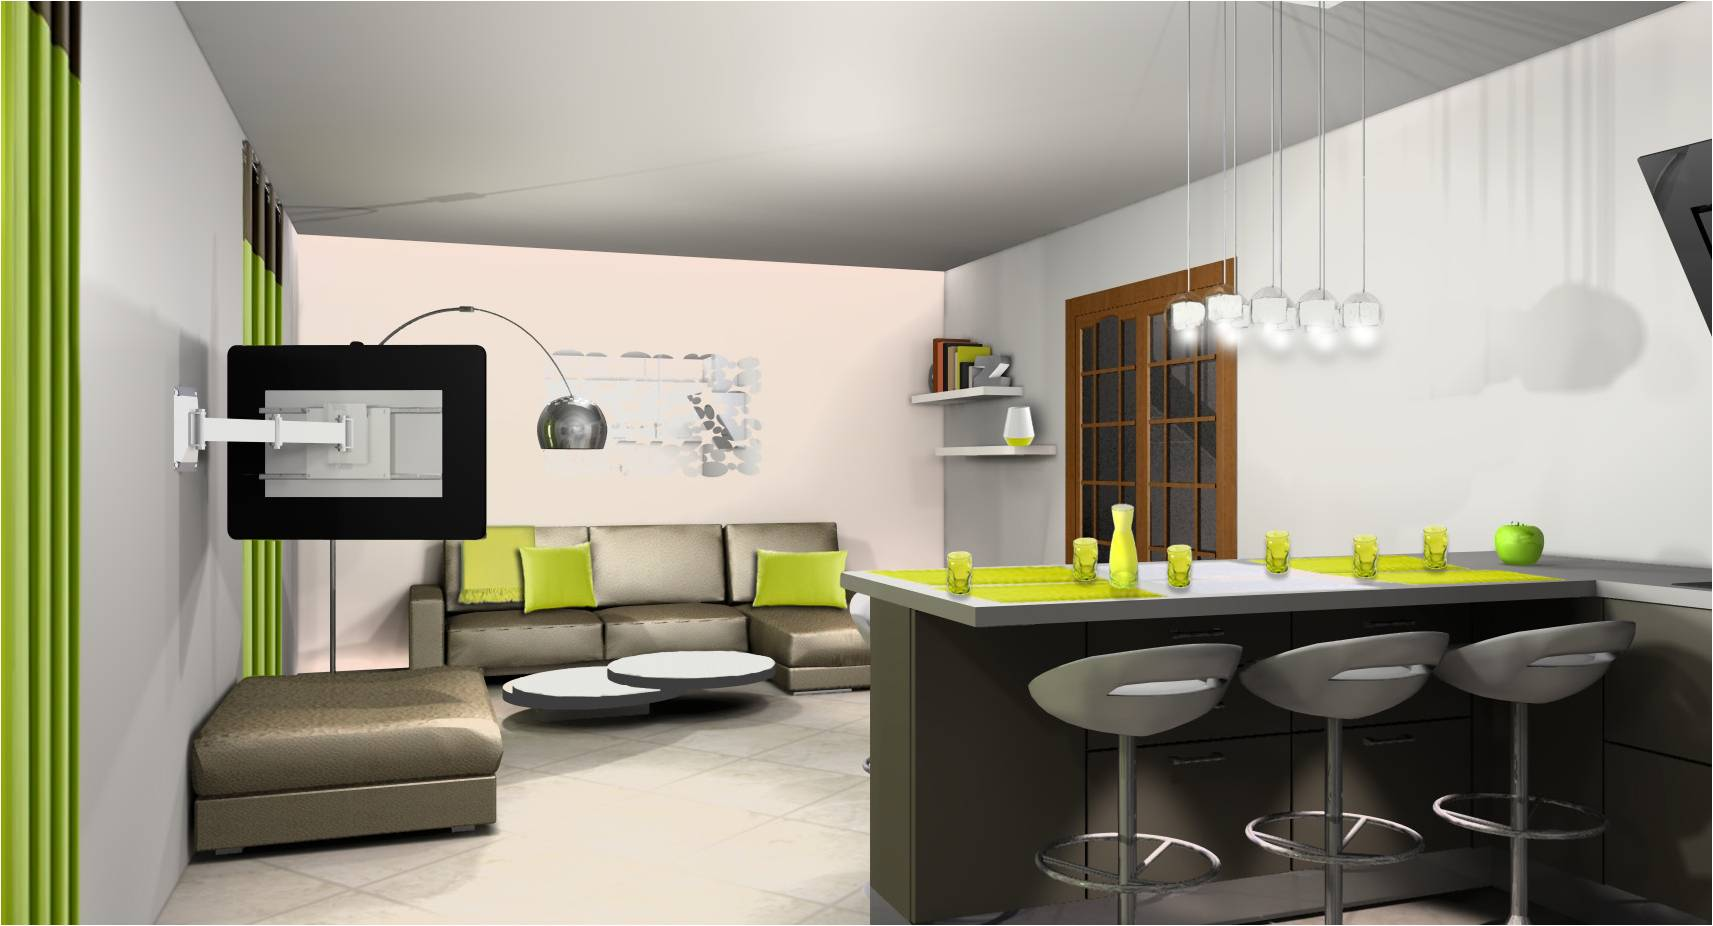 D coration cuisine salon exemples d 39 am nagements for Amenagement de salon moderne